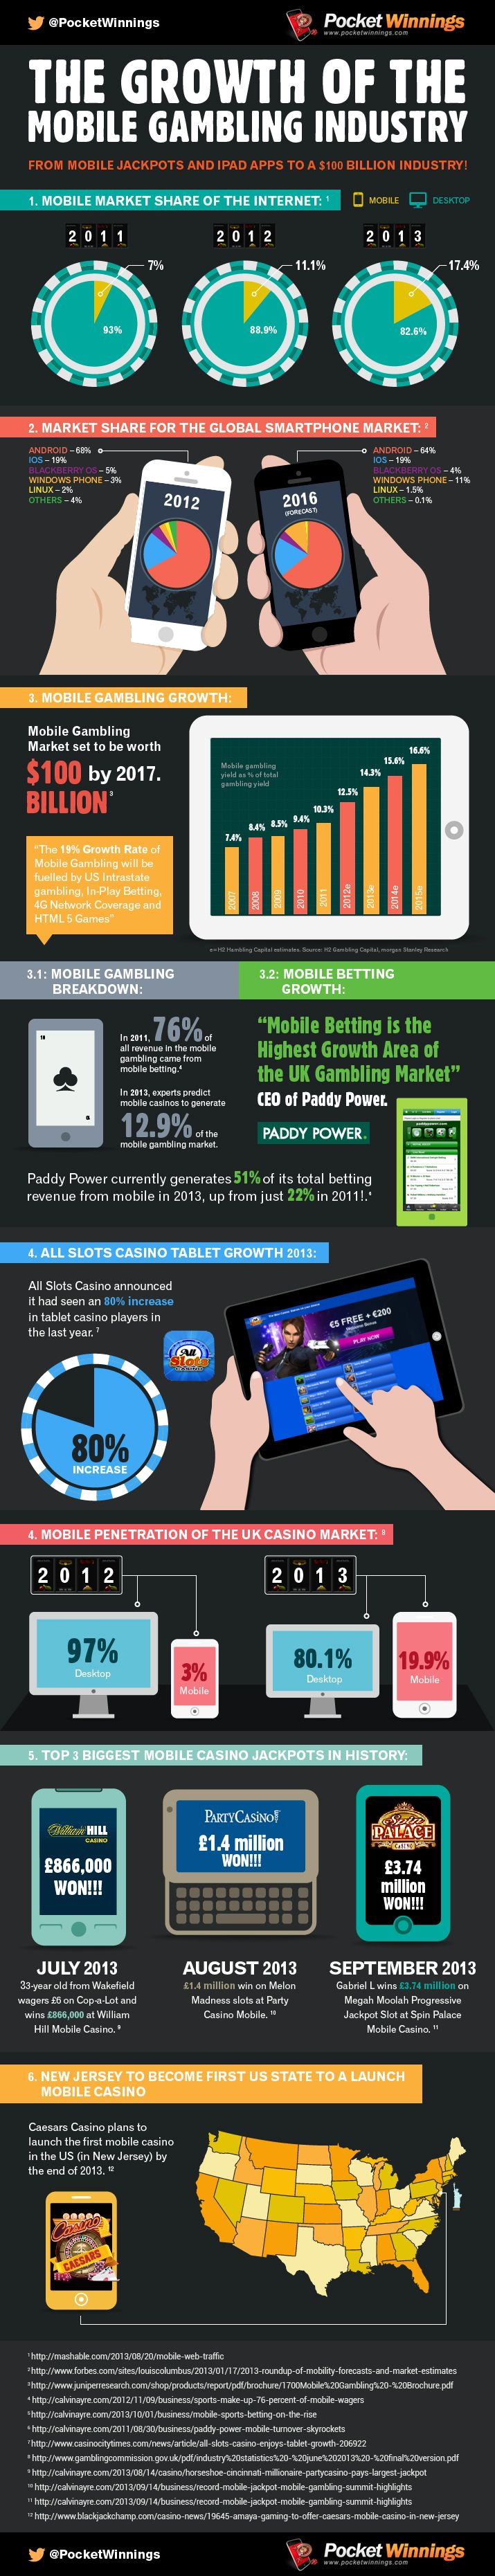 This infographic displays key information, statistics and factors about the growth of real money mobile gaming.  It includes information about market